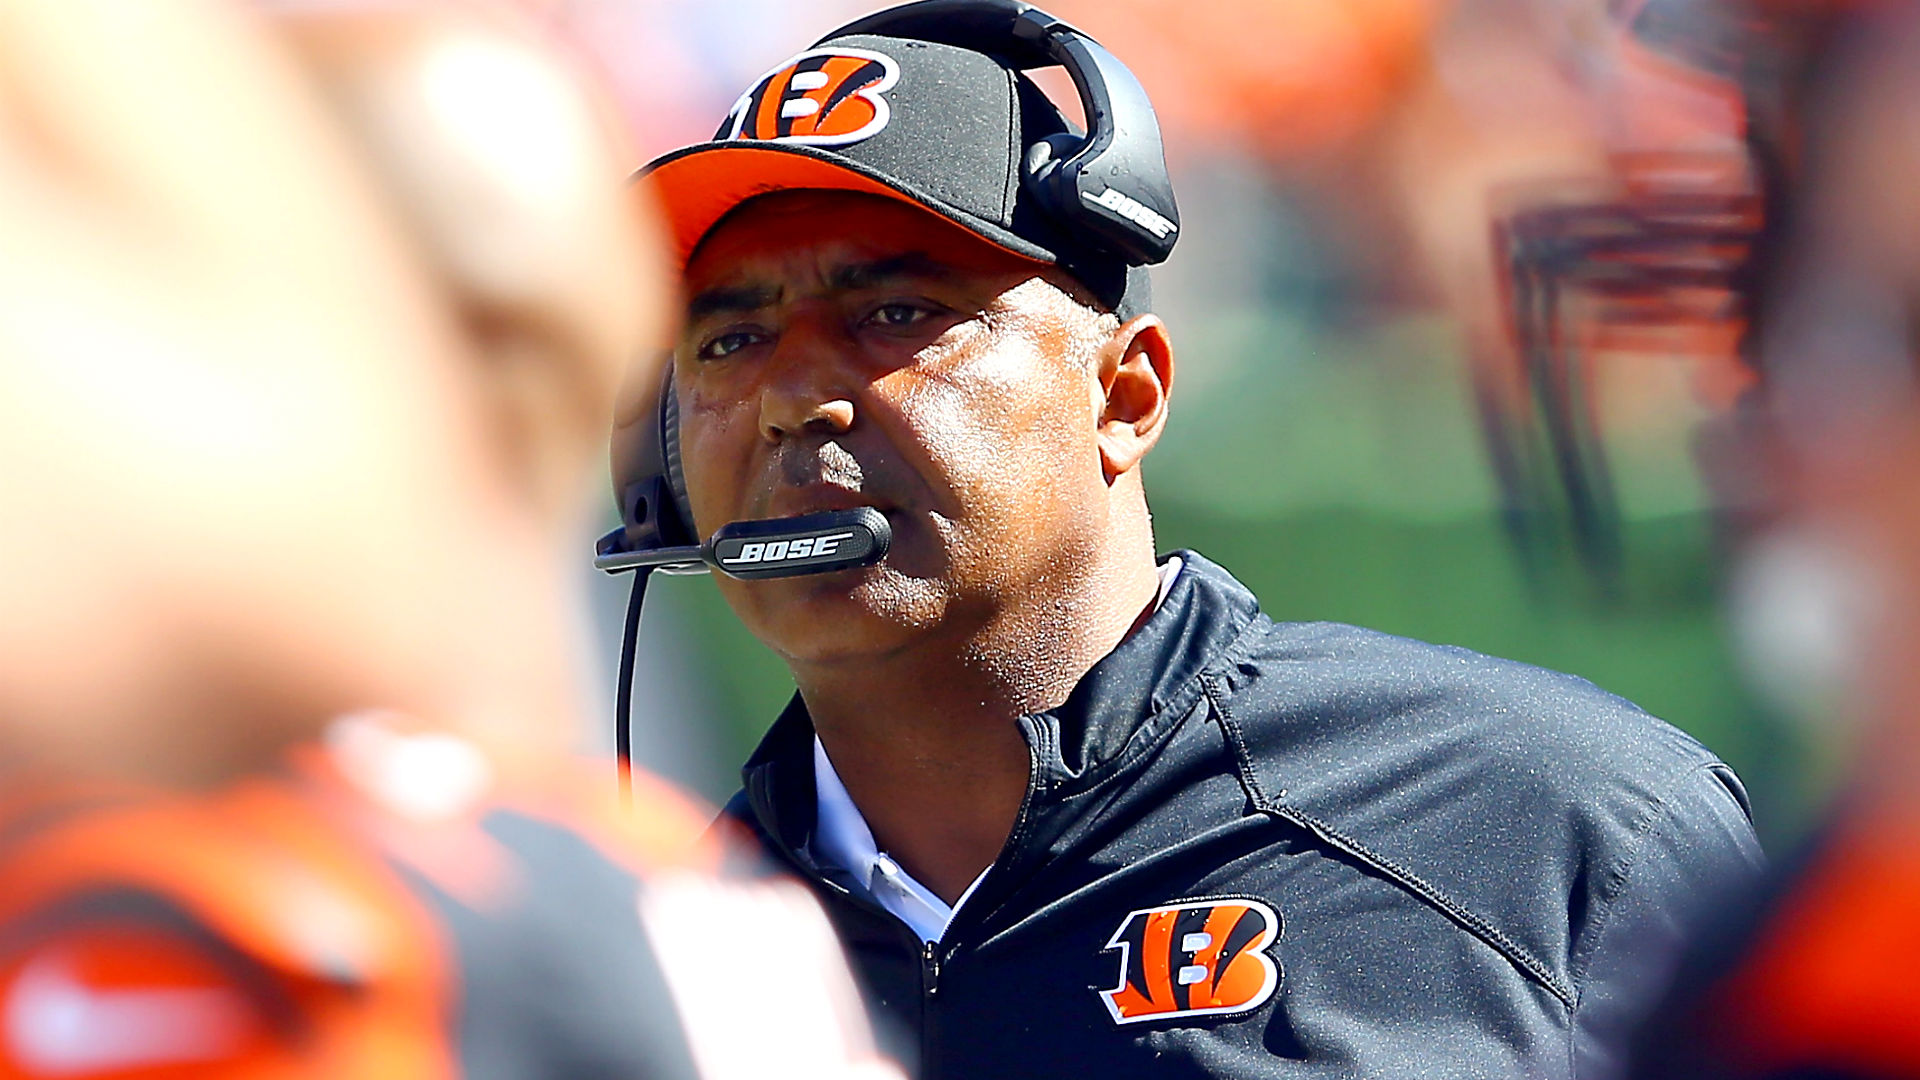 Bengals coach Marvin Lewis says he will return in 2017